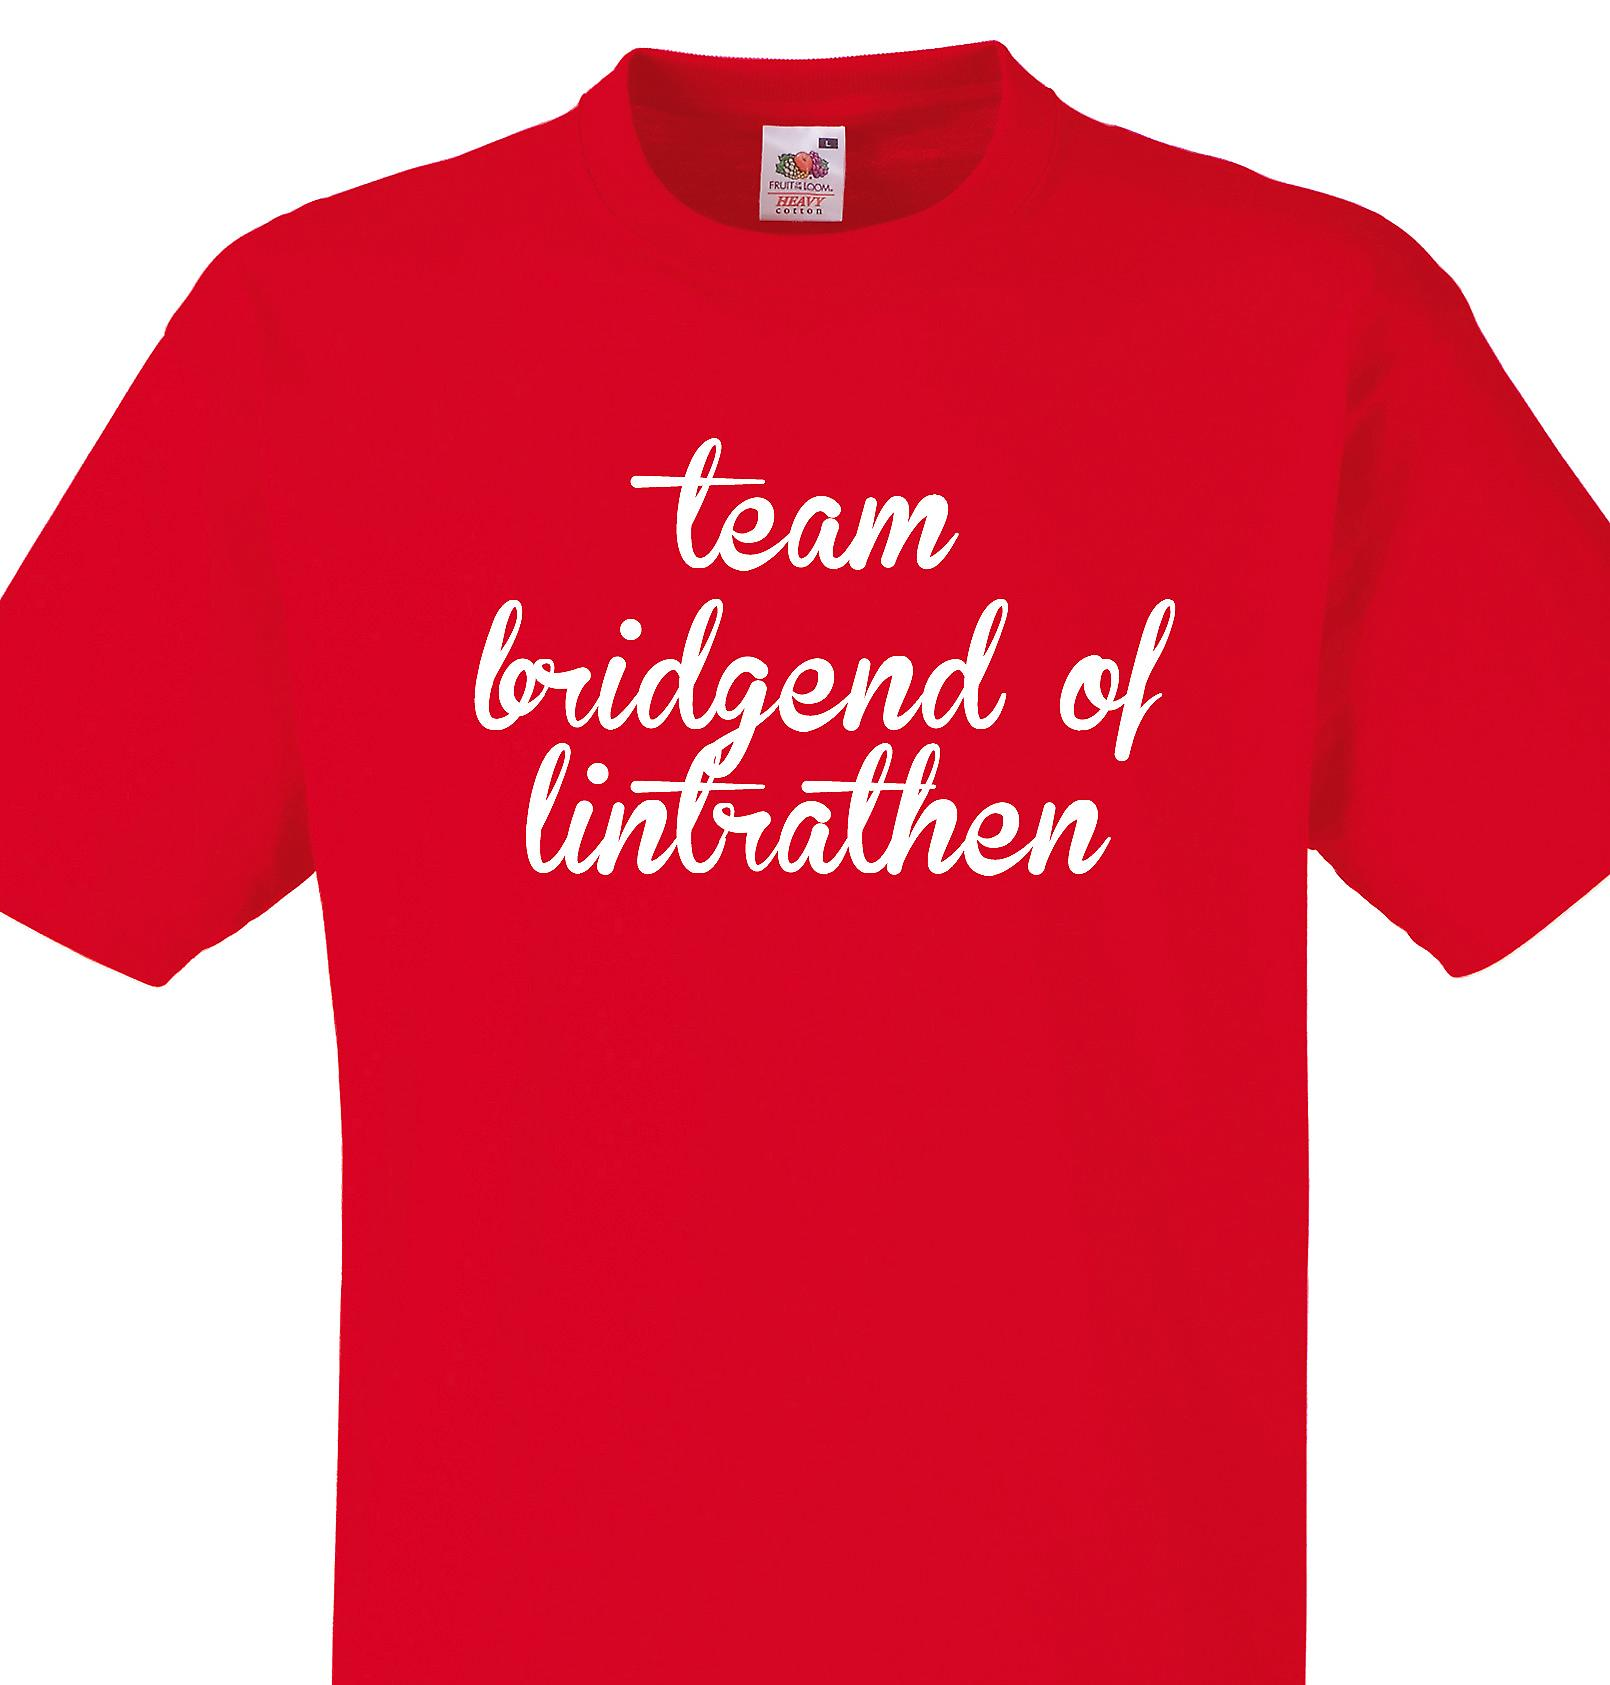 Team Bridgend of lintrathen Red T shirt